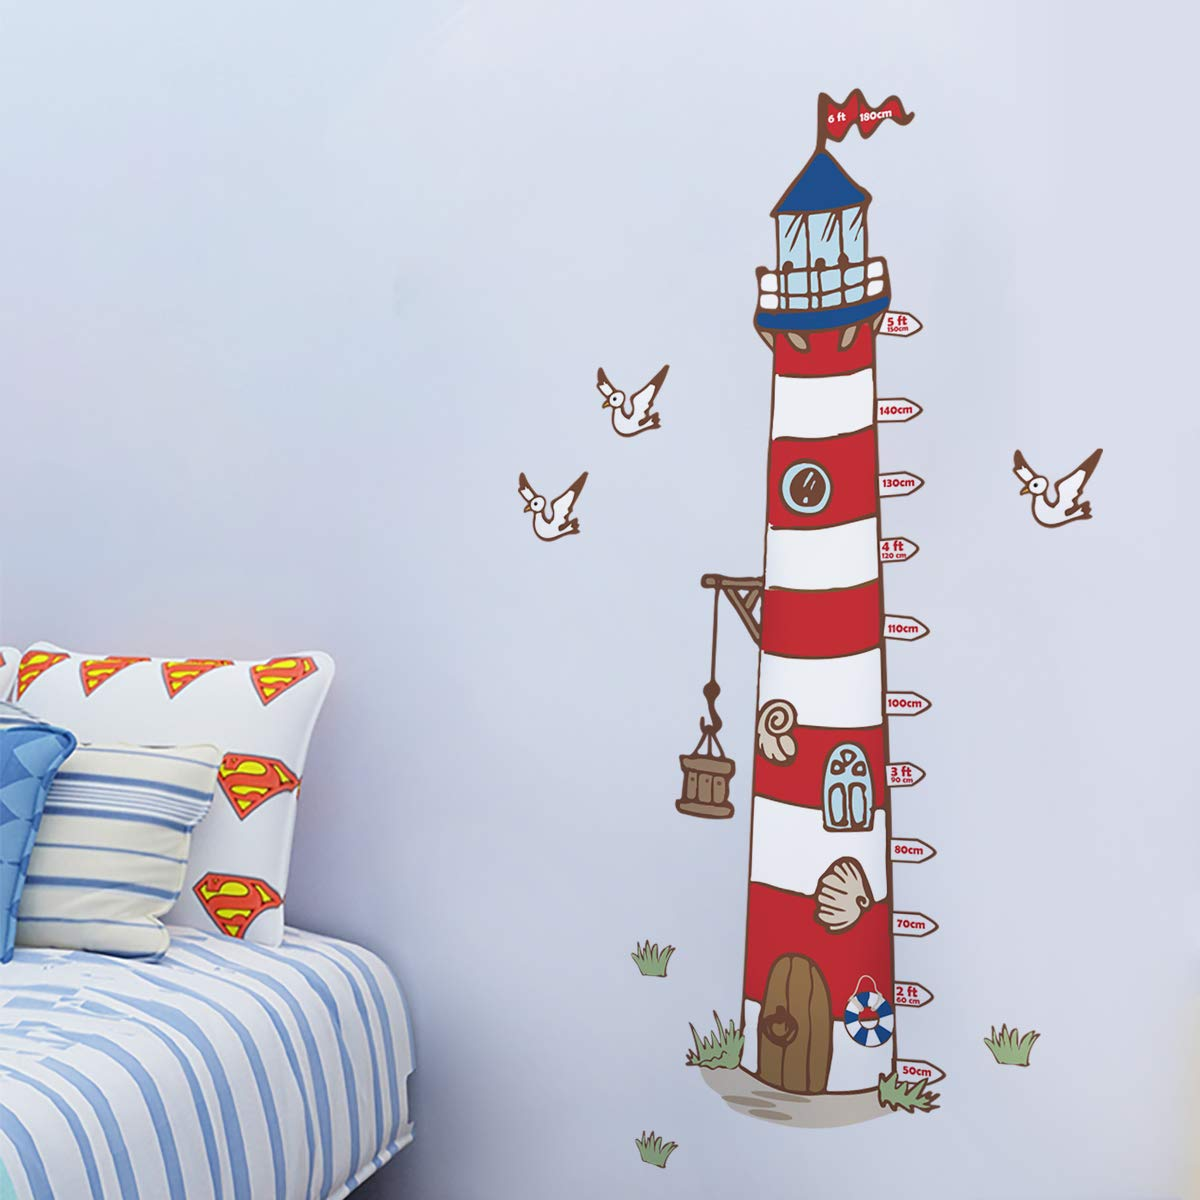 decalmile Large Lighthouse Height Chart Wall Stickers Kids Measure Growth Wall Decals Baby Nursery Childrens Bedroom Living Room Wall Decor